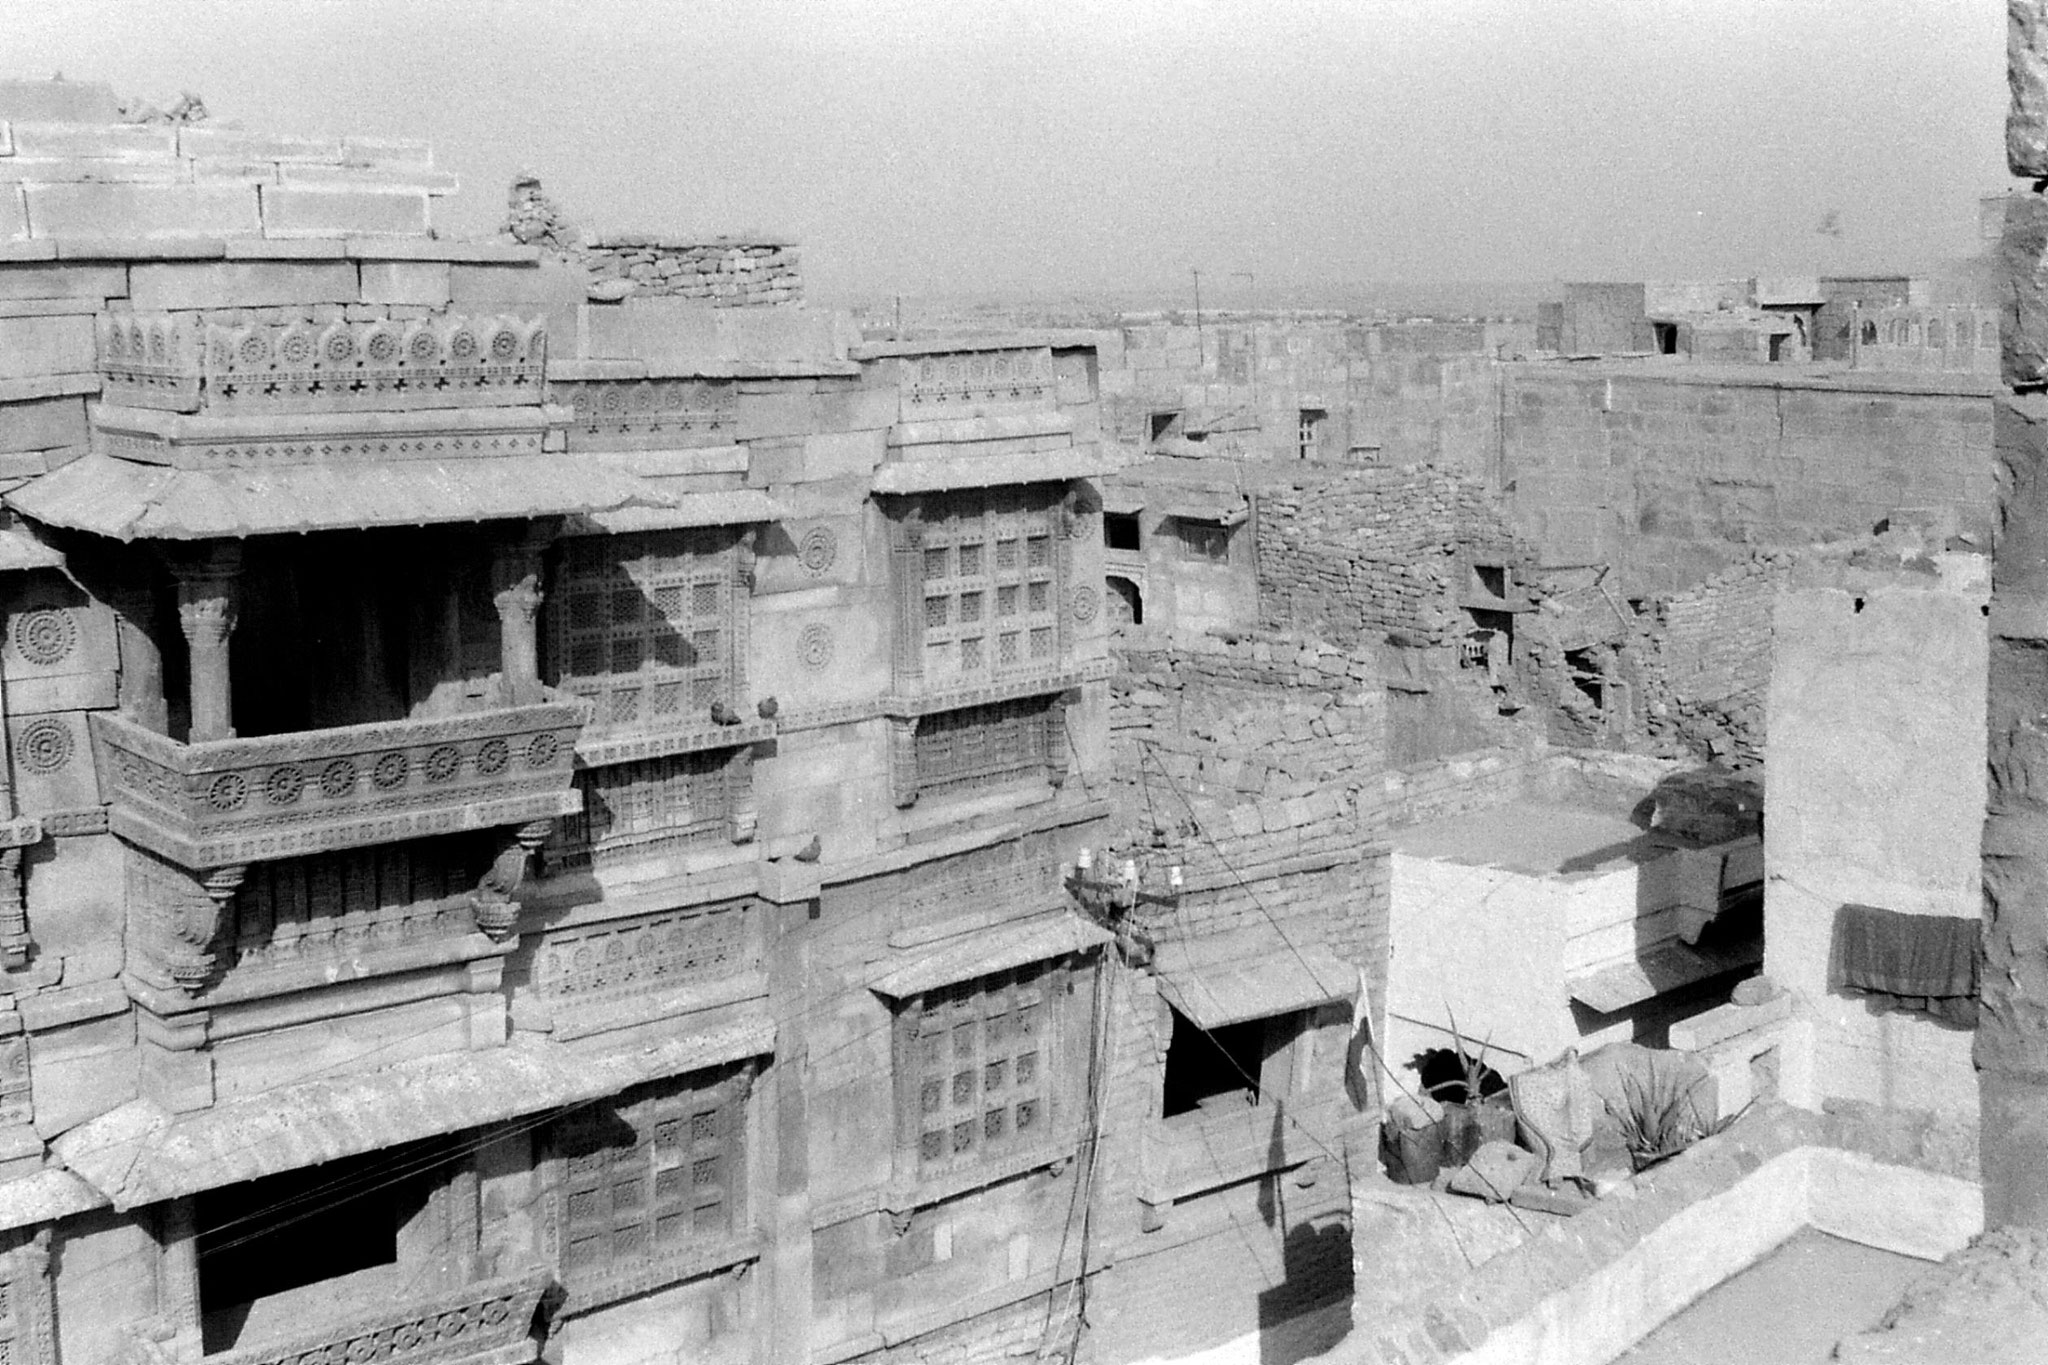 2/12/1989: 7: Jaisalmer from our hotel looking NW